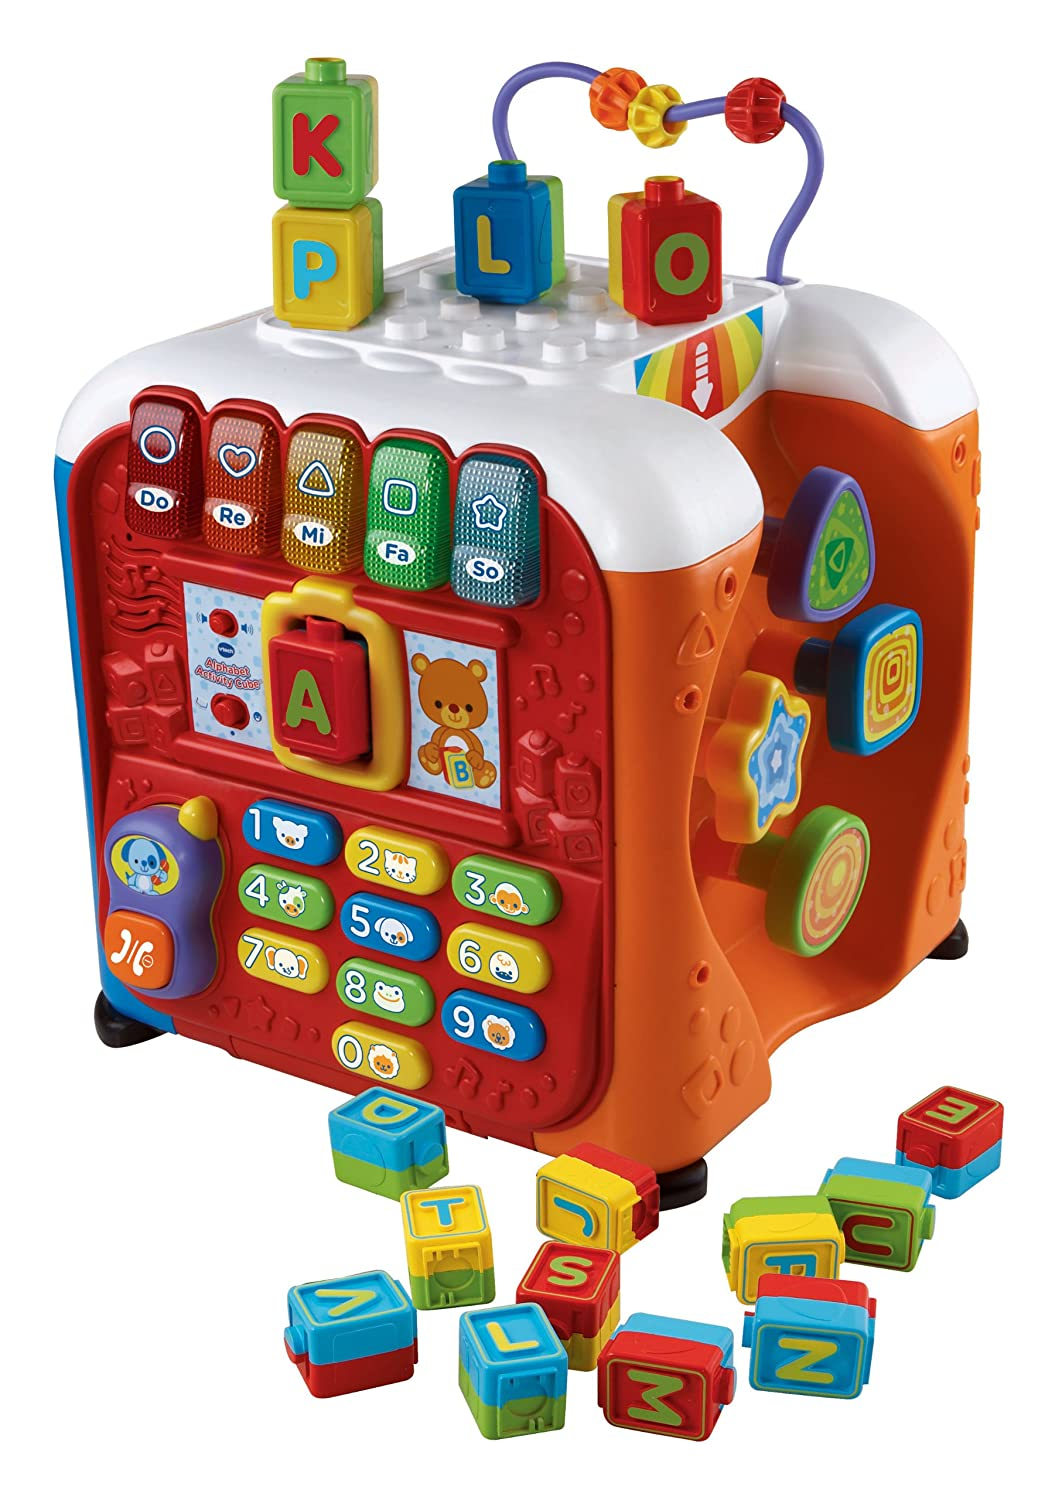 Best Educational Toys For Tech : Great educational toys for toddlers from vtech